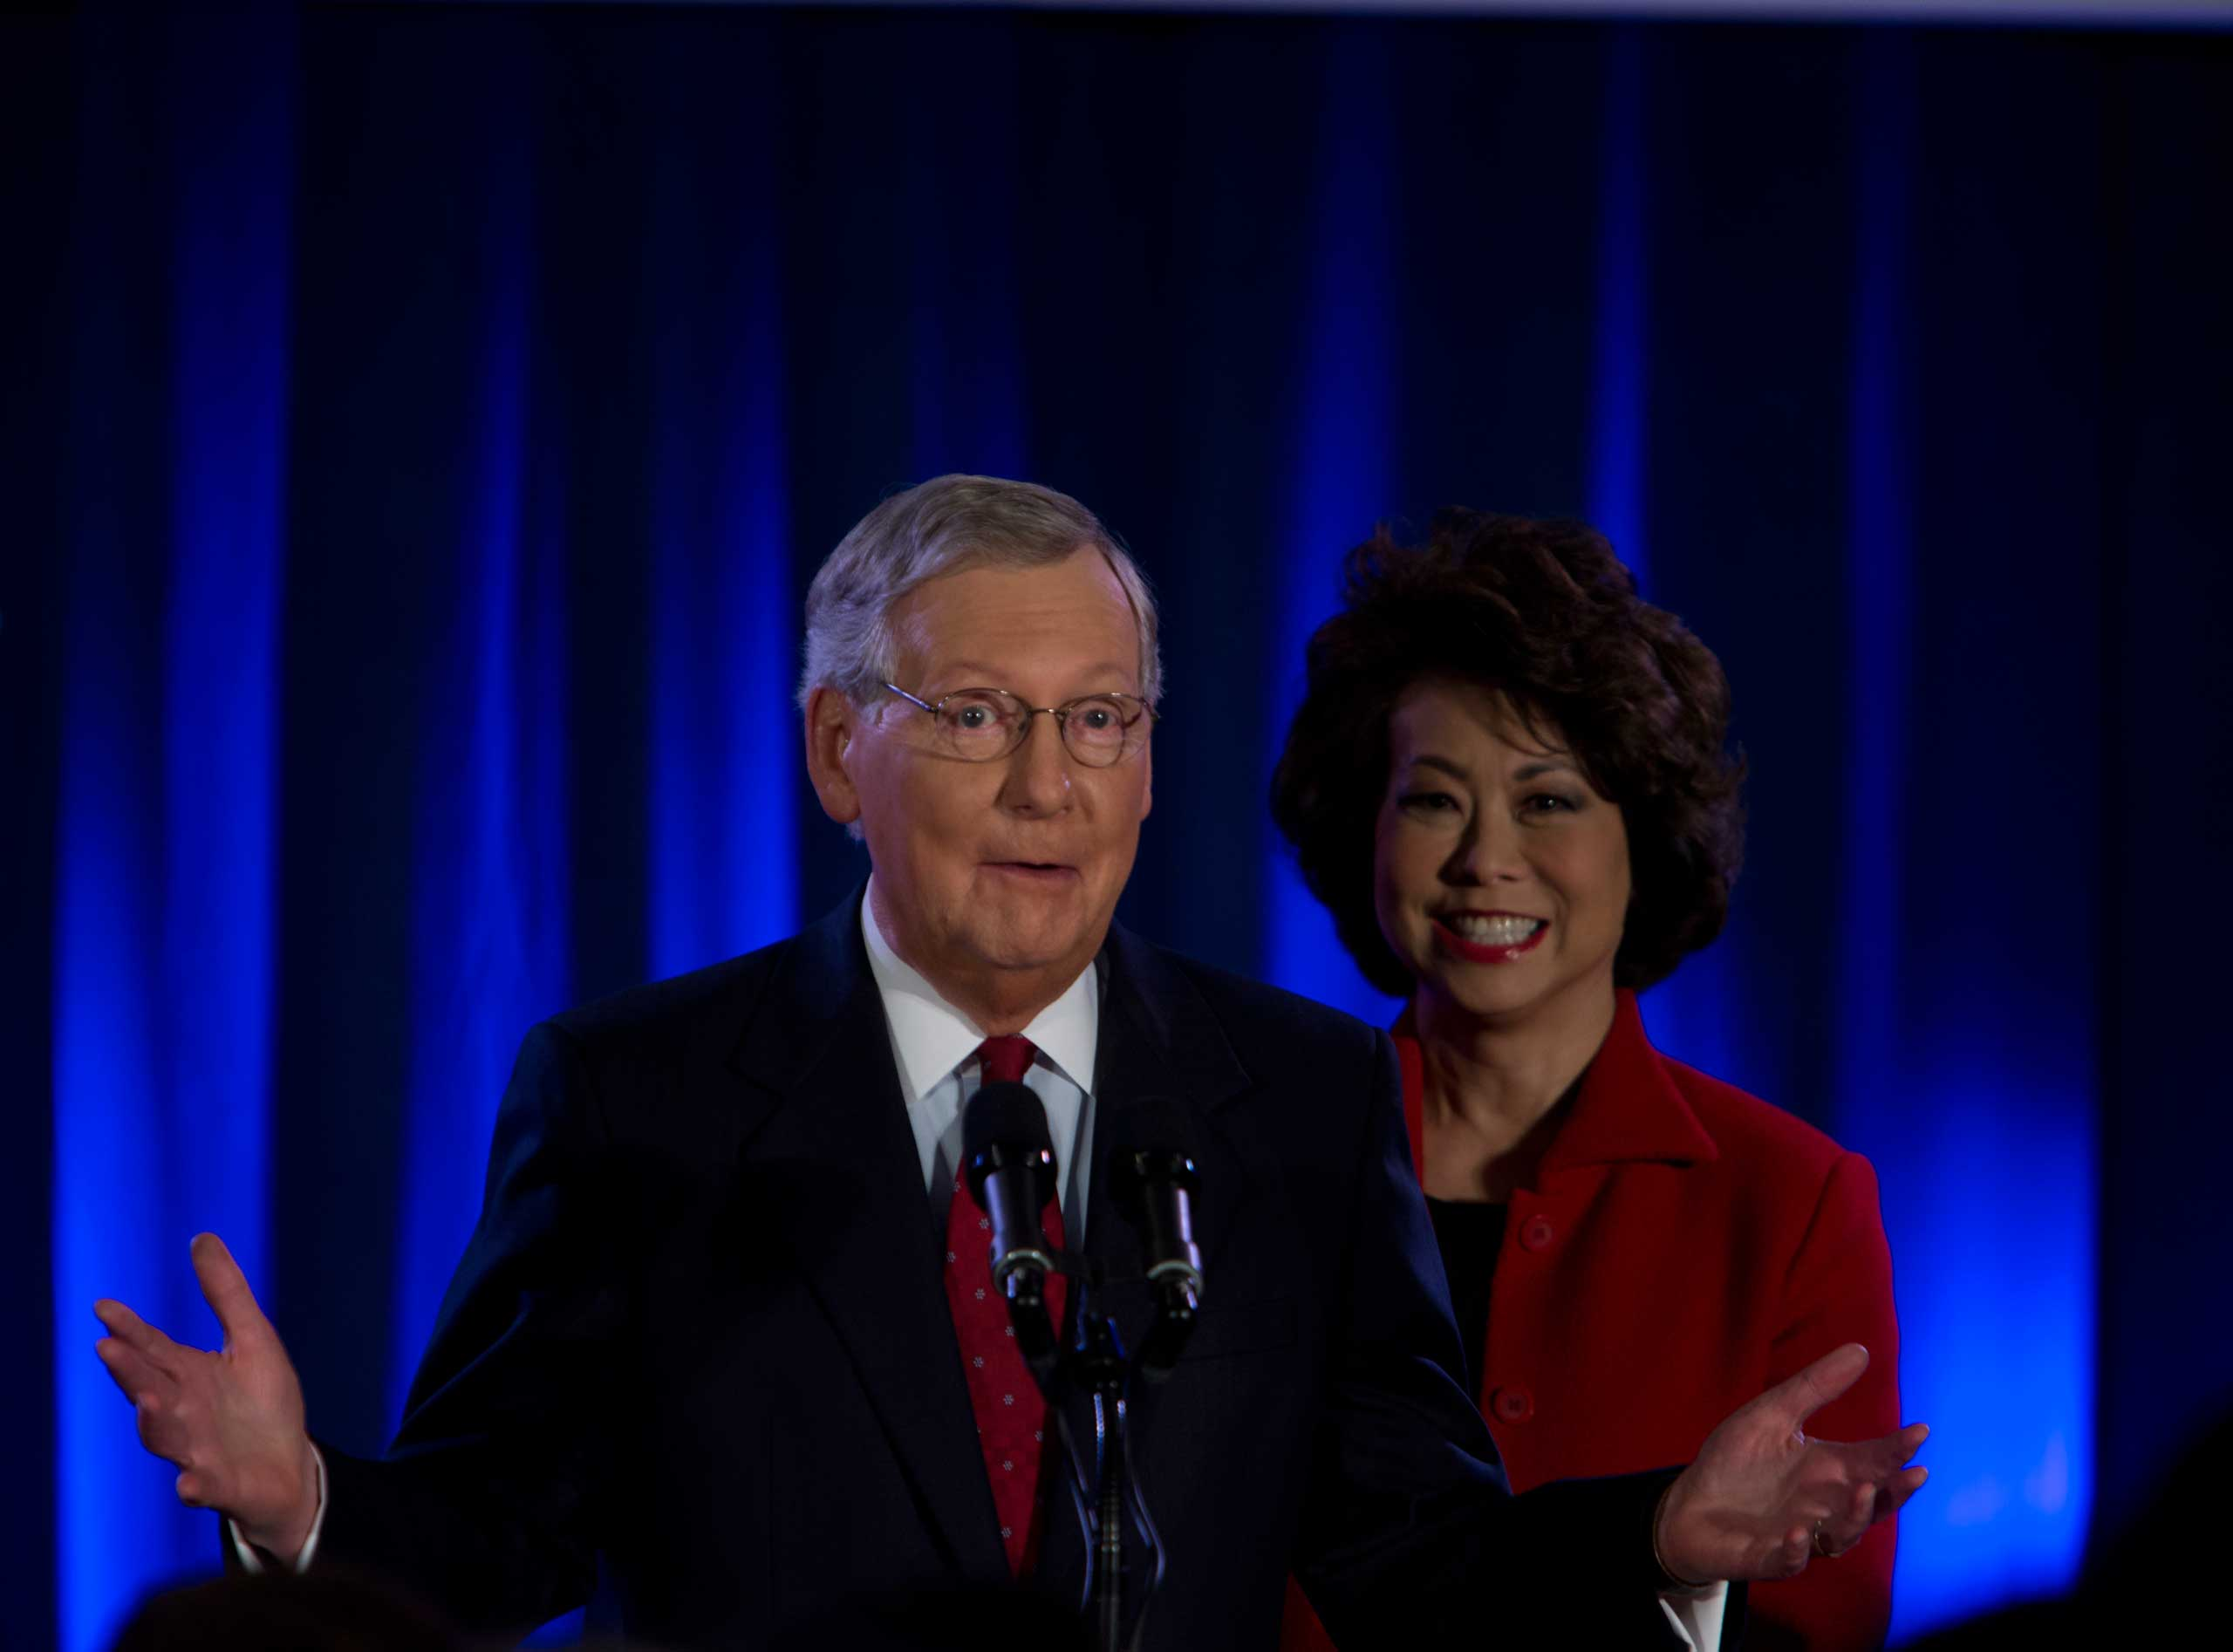 Sen. Mitch McConnell at his election night celebration in Louisville, Ky. on Nov. 4, 2014.